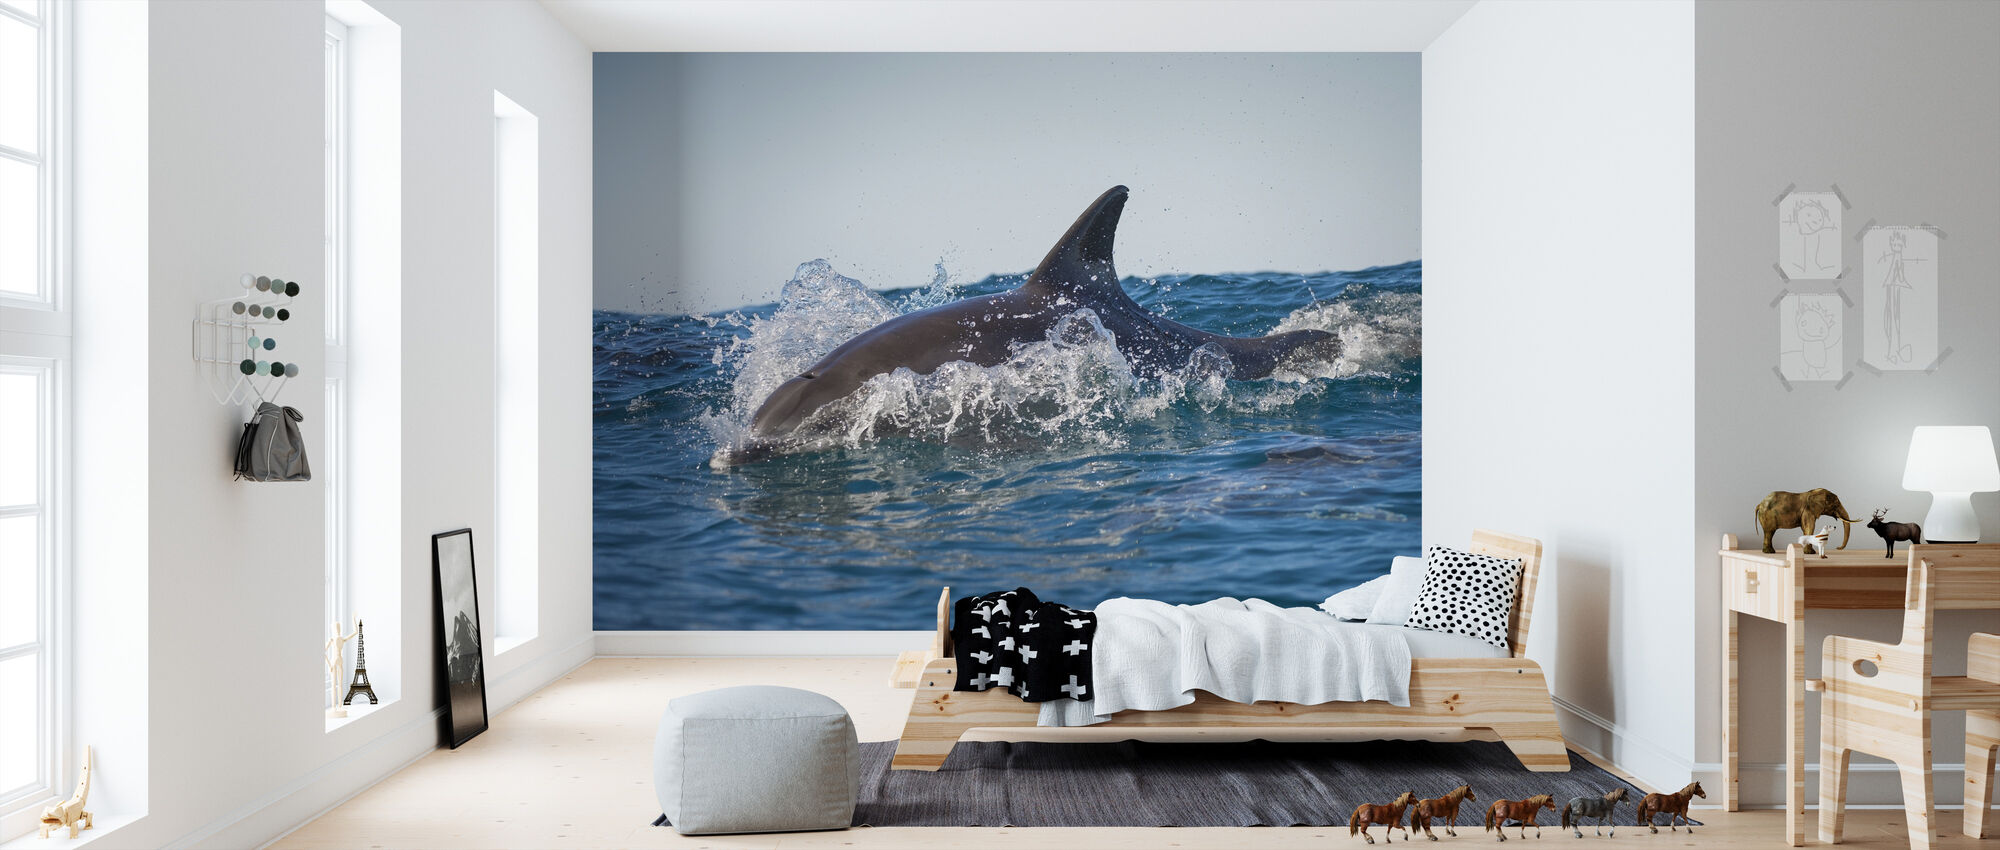 Bottlenose Dolphin - Wallpaper - Kids Room